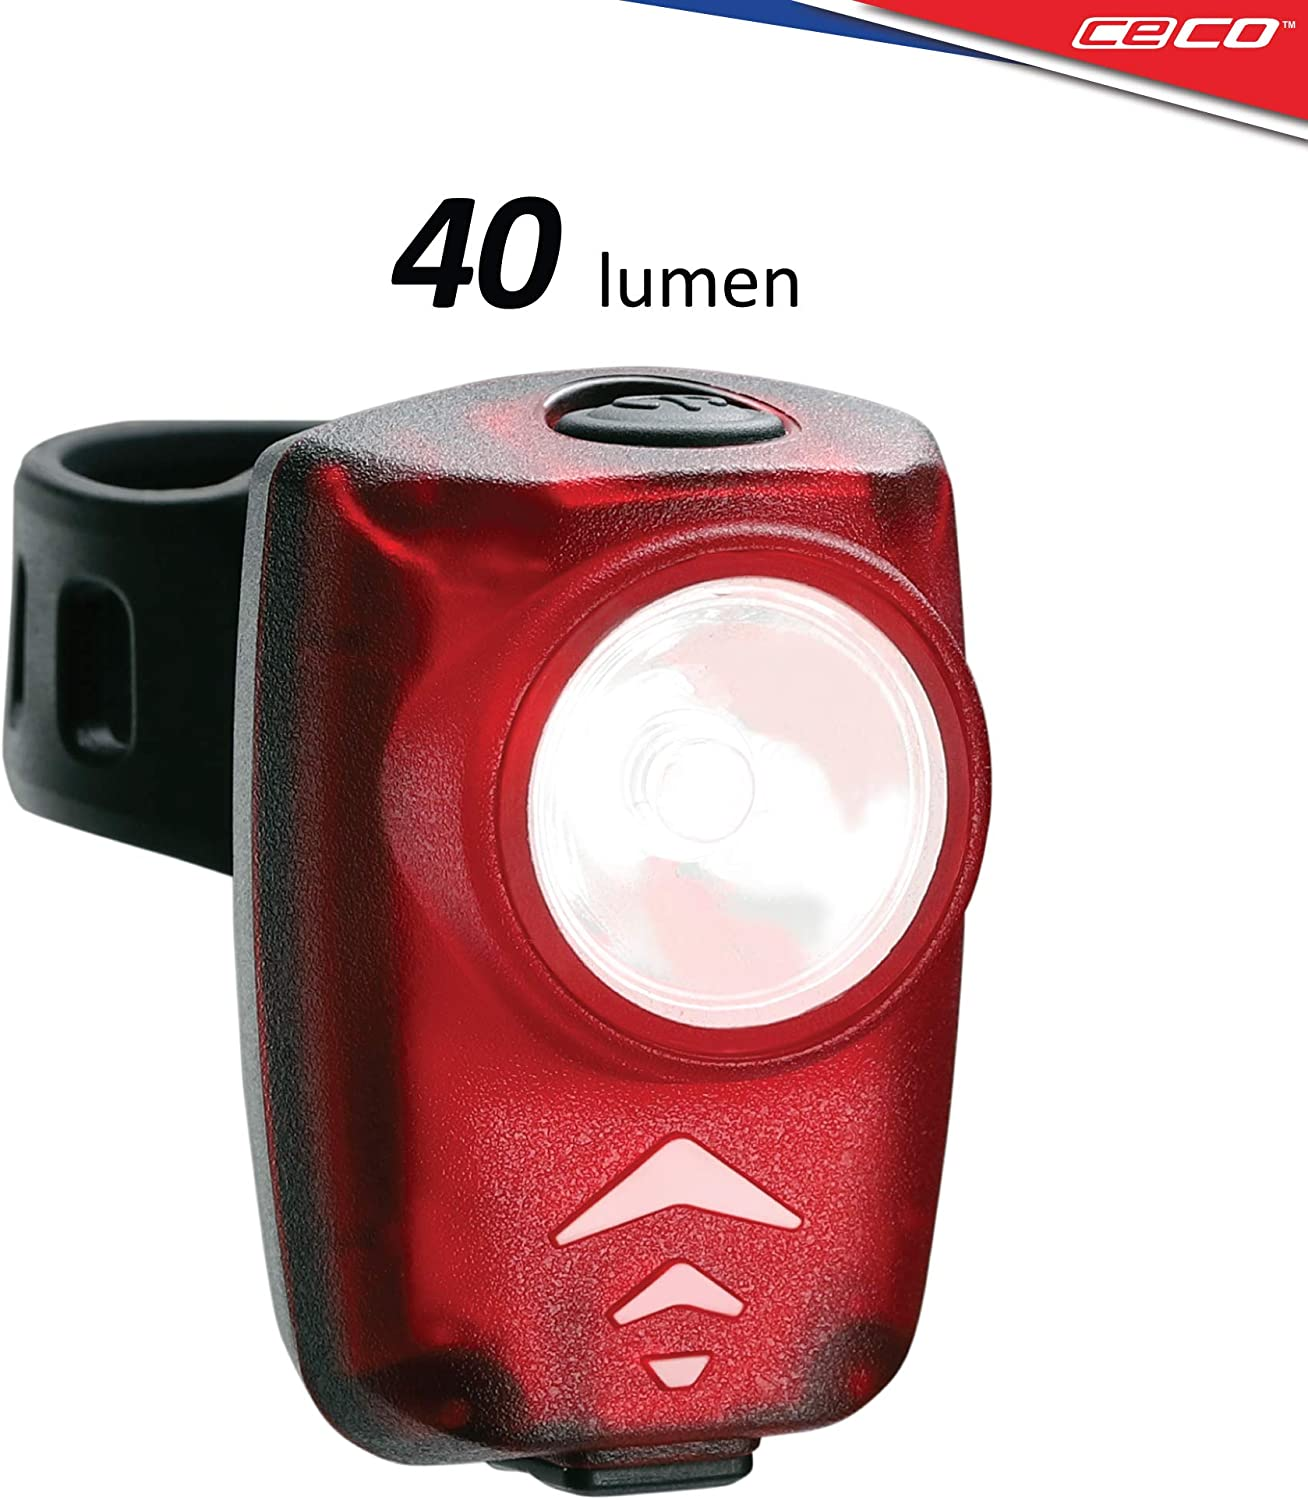 CECO-USA 40 Lumen USB Rechargeable Bike Tail Light – Super Bright Model T40 Bicycle Rear Light – IP67 Waterproof, FL-1 Impact Resistant – Red Safety Light – Pro Grade Quality Bike Tail Light